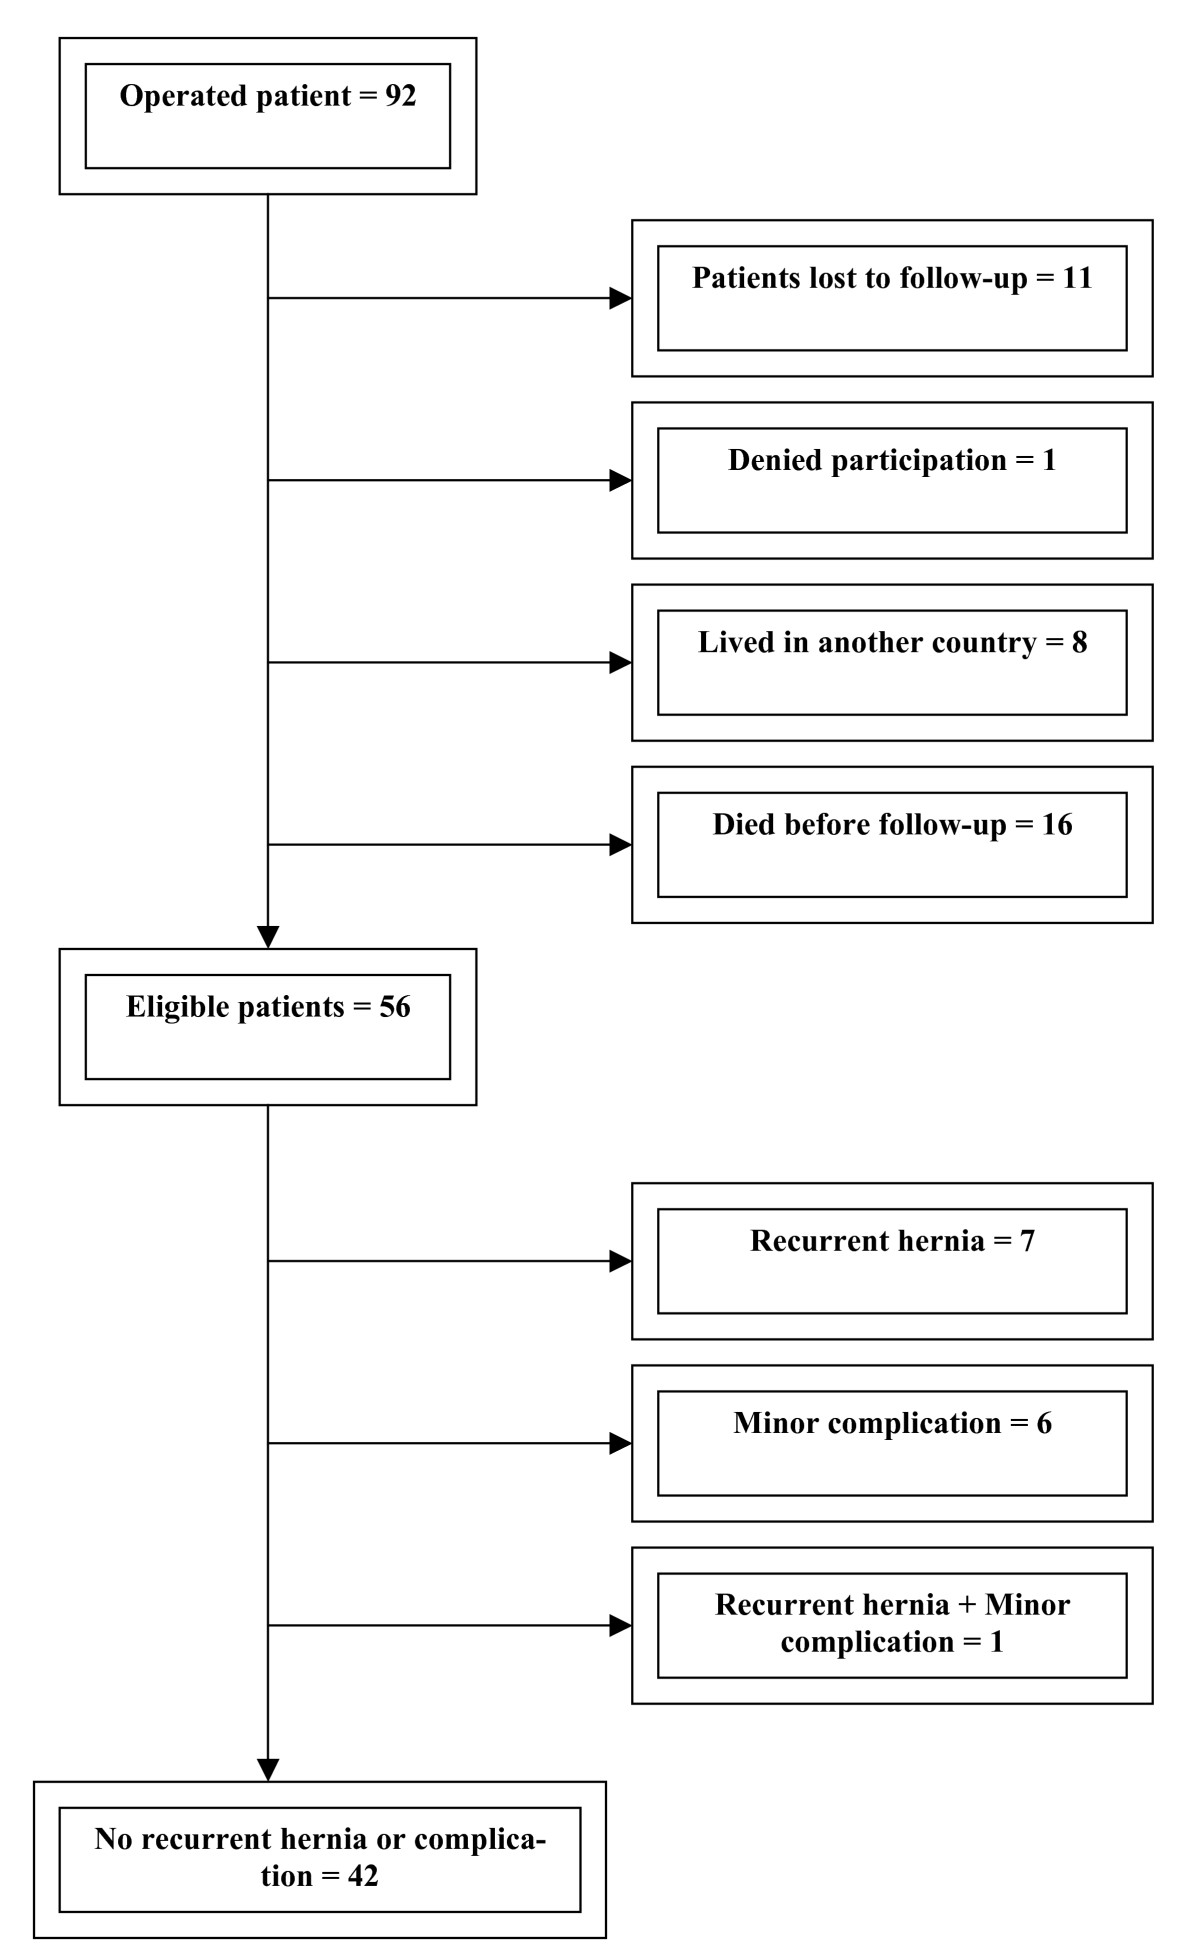 http://static-content.springer.com/image/art%3A10.1186%2F1471-2482-9-6/MediaObjects/12893_2008_Article_133_Fig2_HTML.jpg